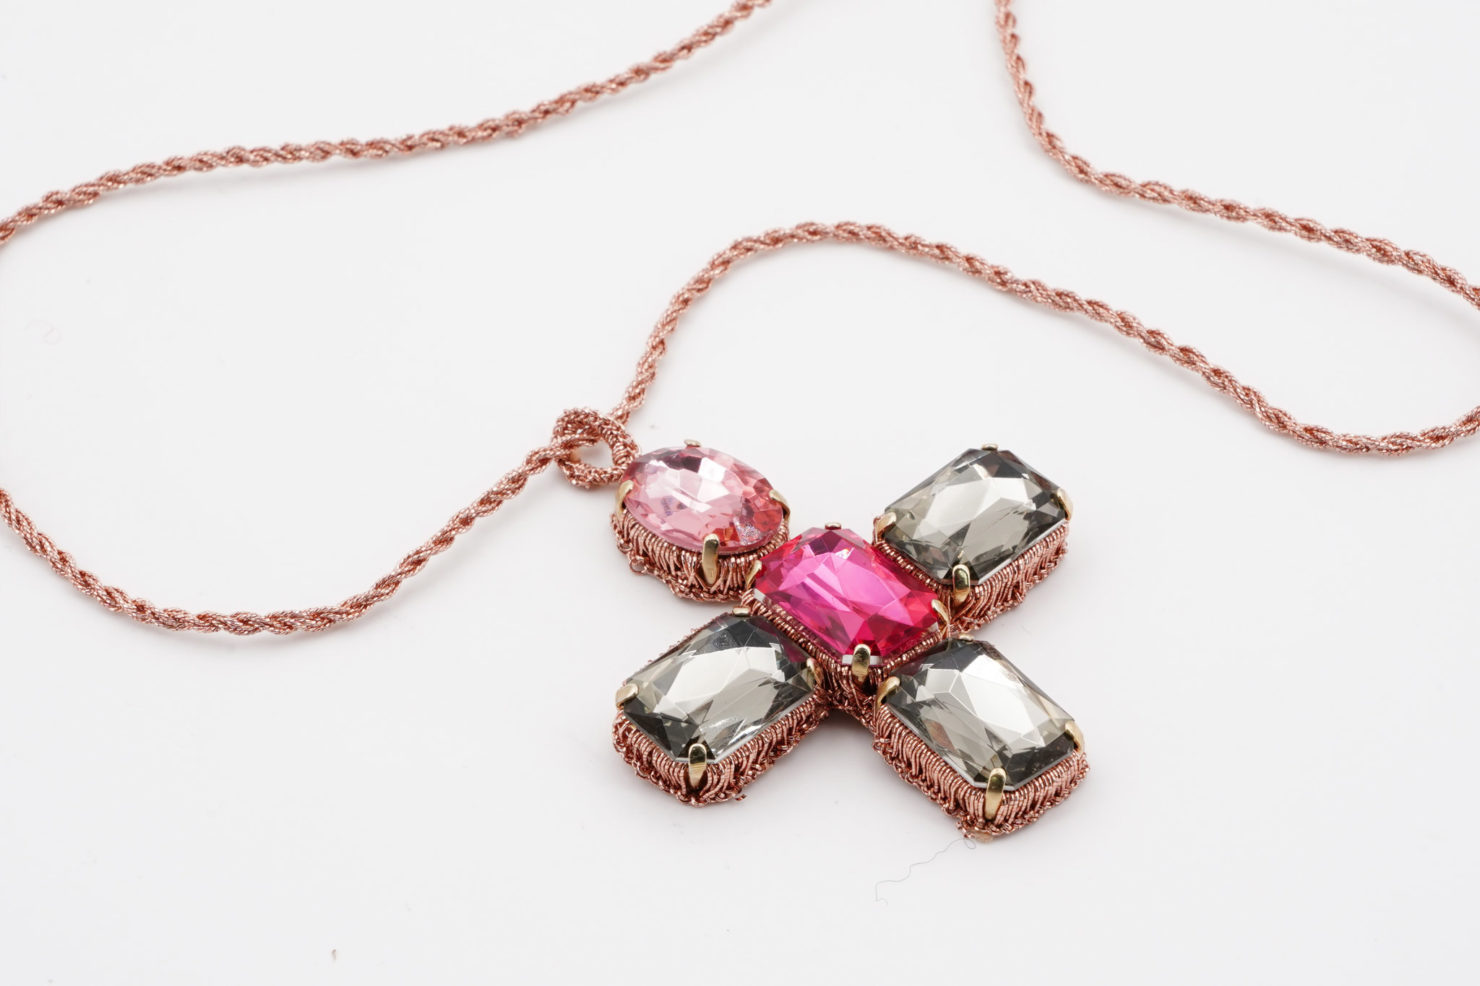 GOLD STRING + PINK/GREY/FUCXIA CRISTAL ROOD NECKLACE - TMD BIJOUX